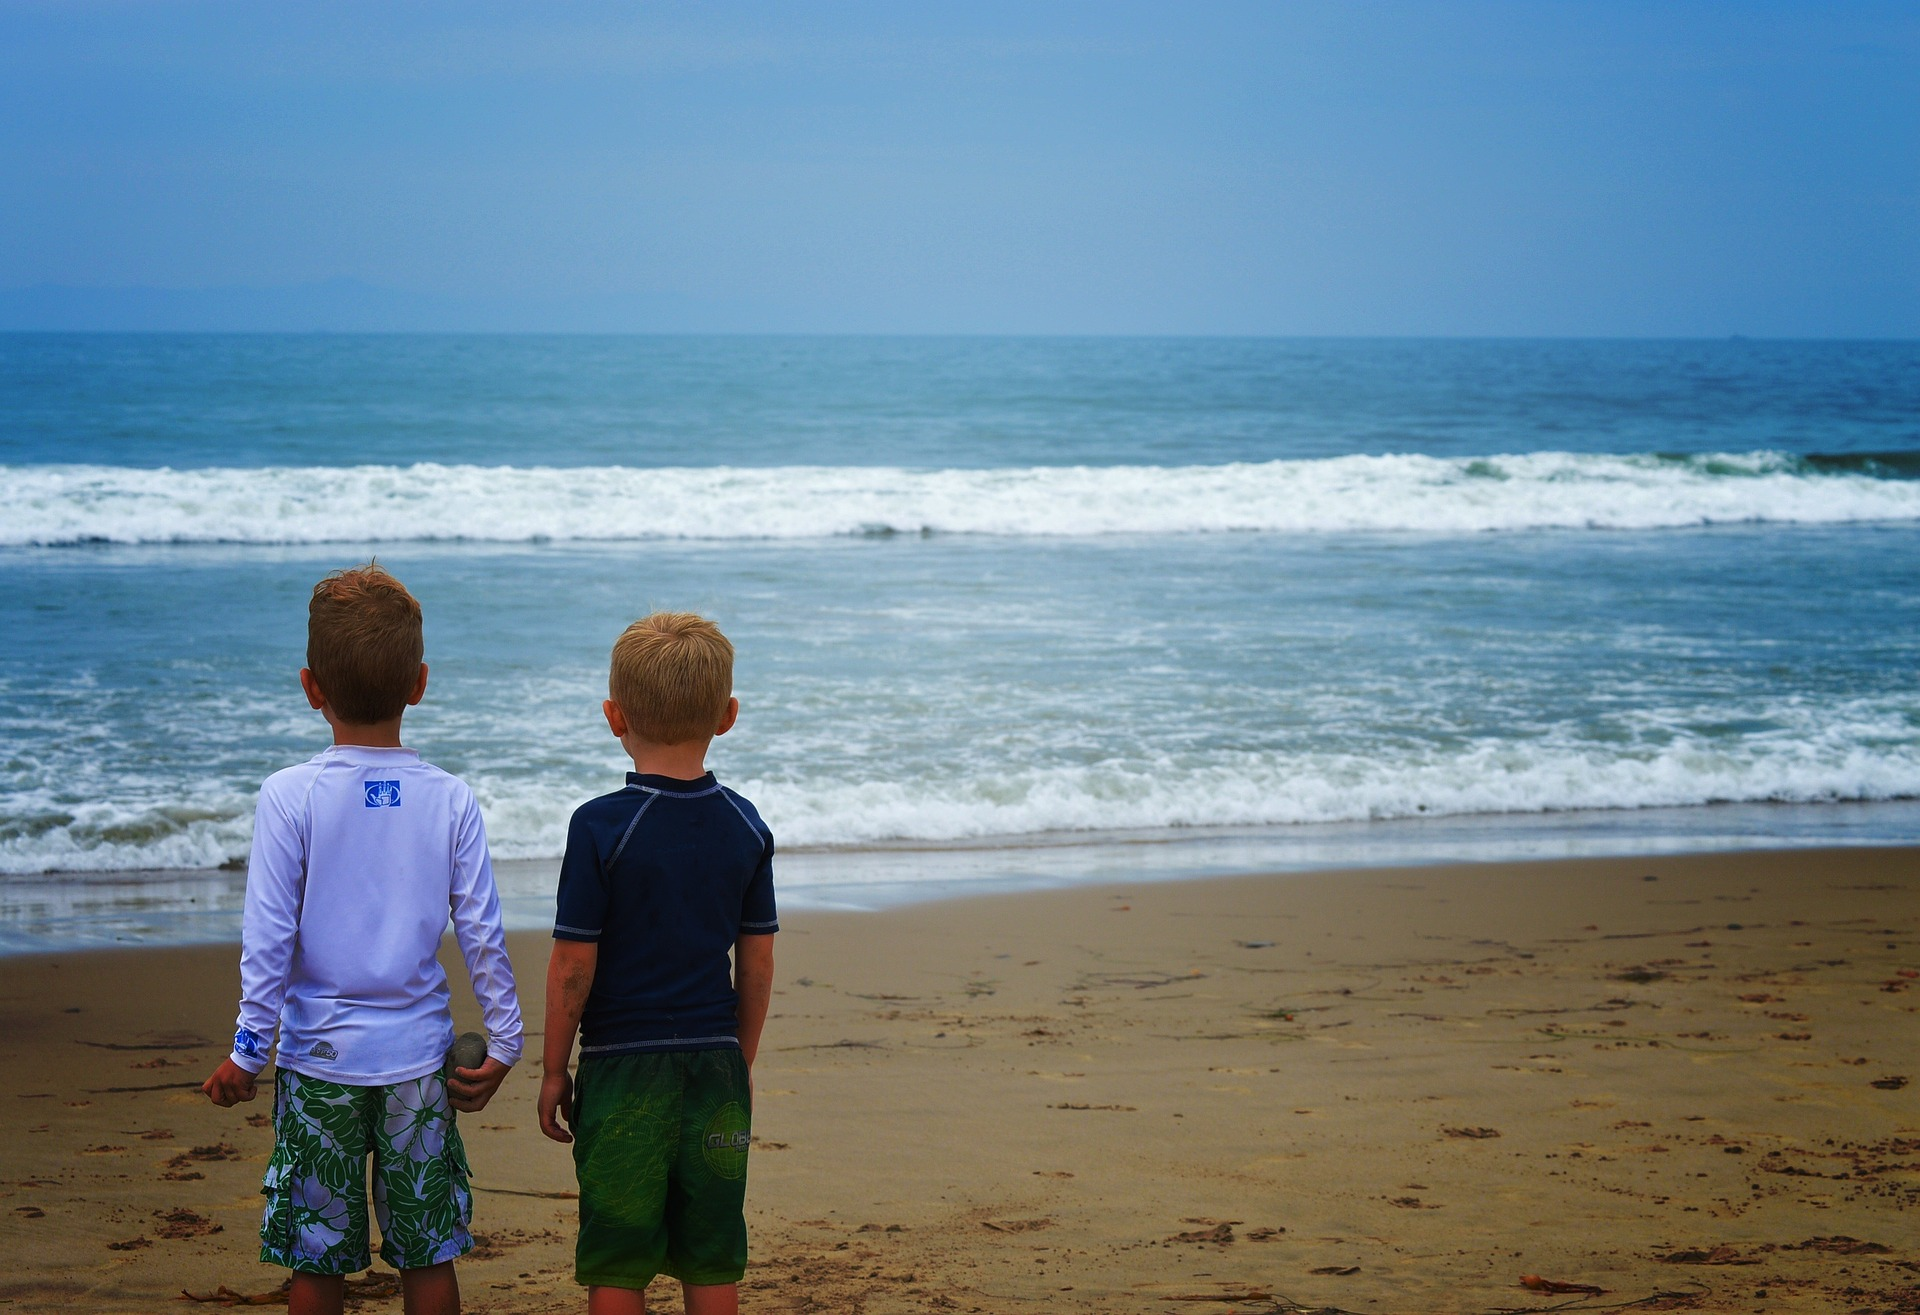 Two boys on the beach during a San Diego family vacation